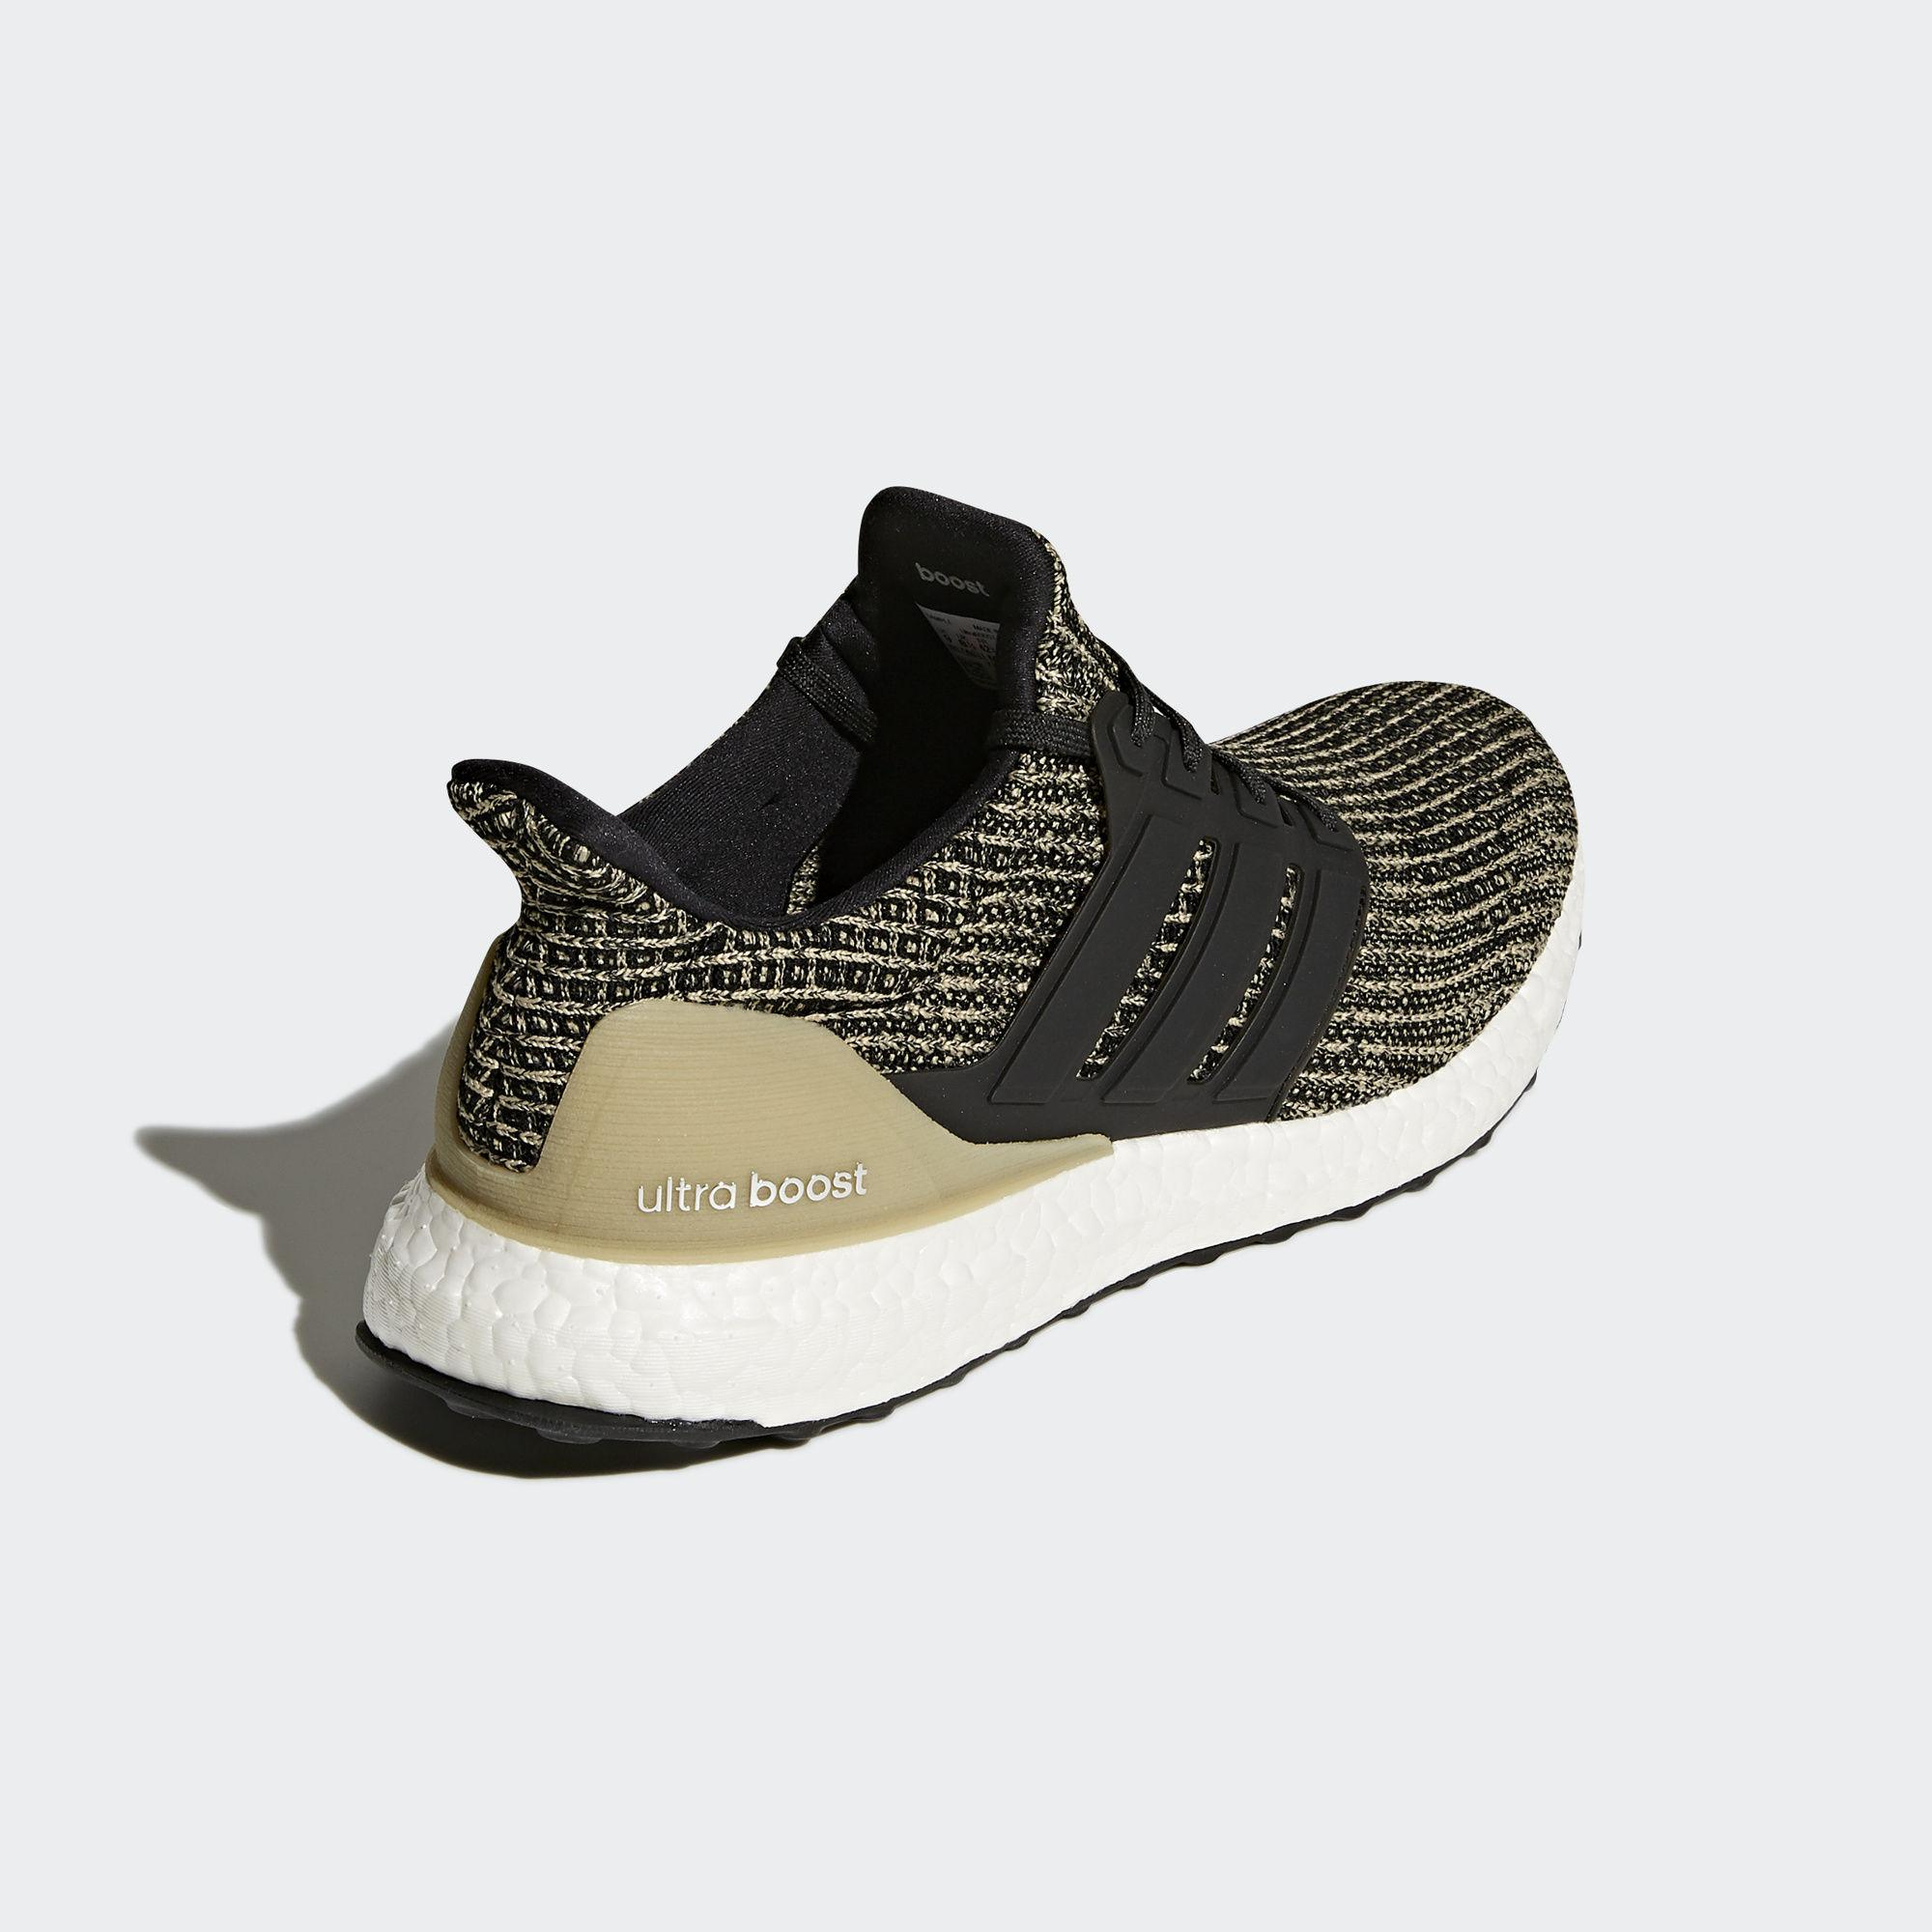 0fc11f2830d Adidas Mens Ultra Boost Running Shoes - Dark Mocha - Tennisnuts.com